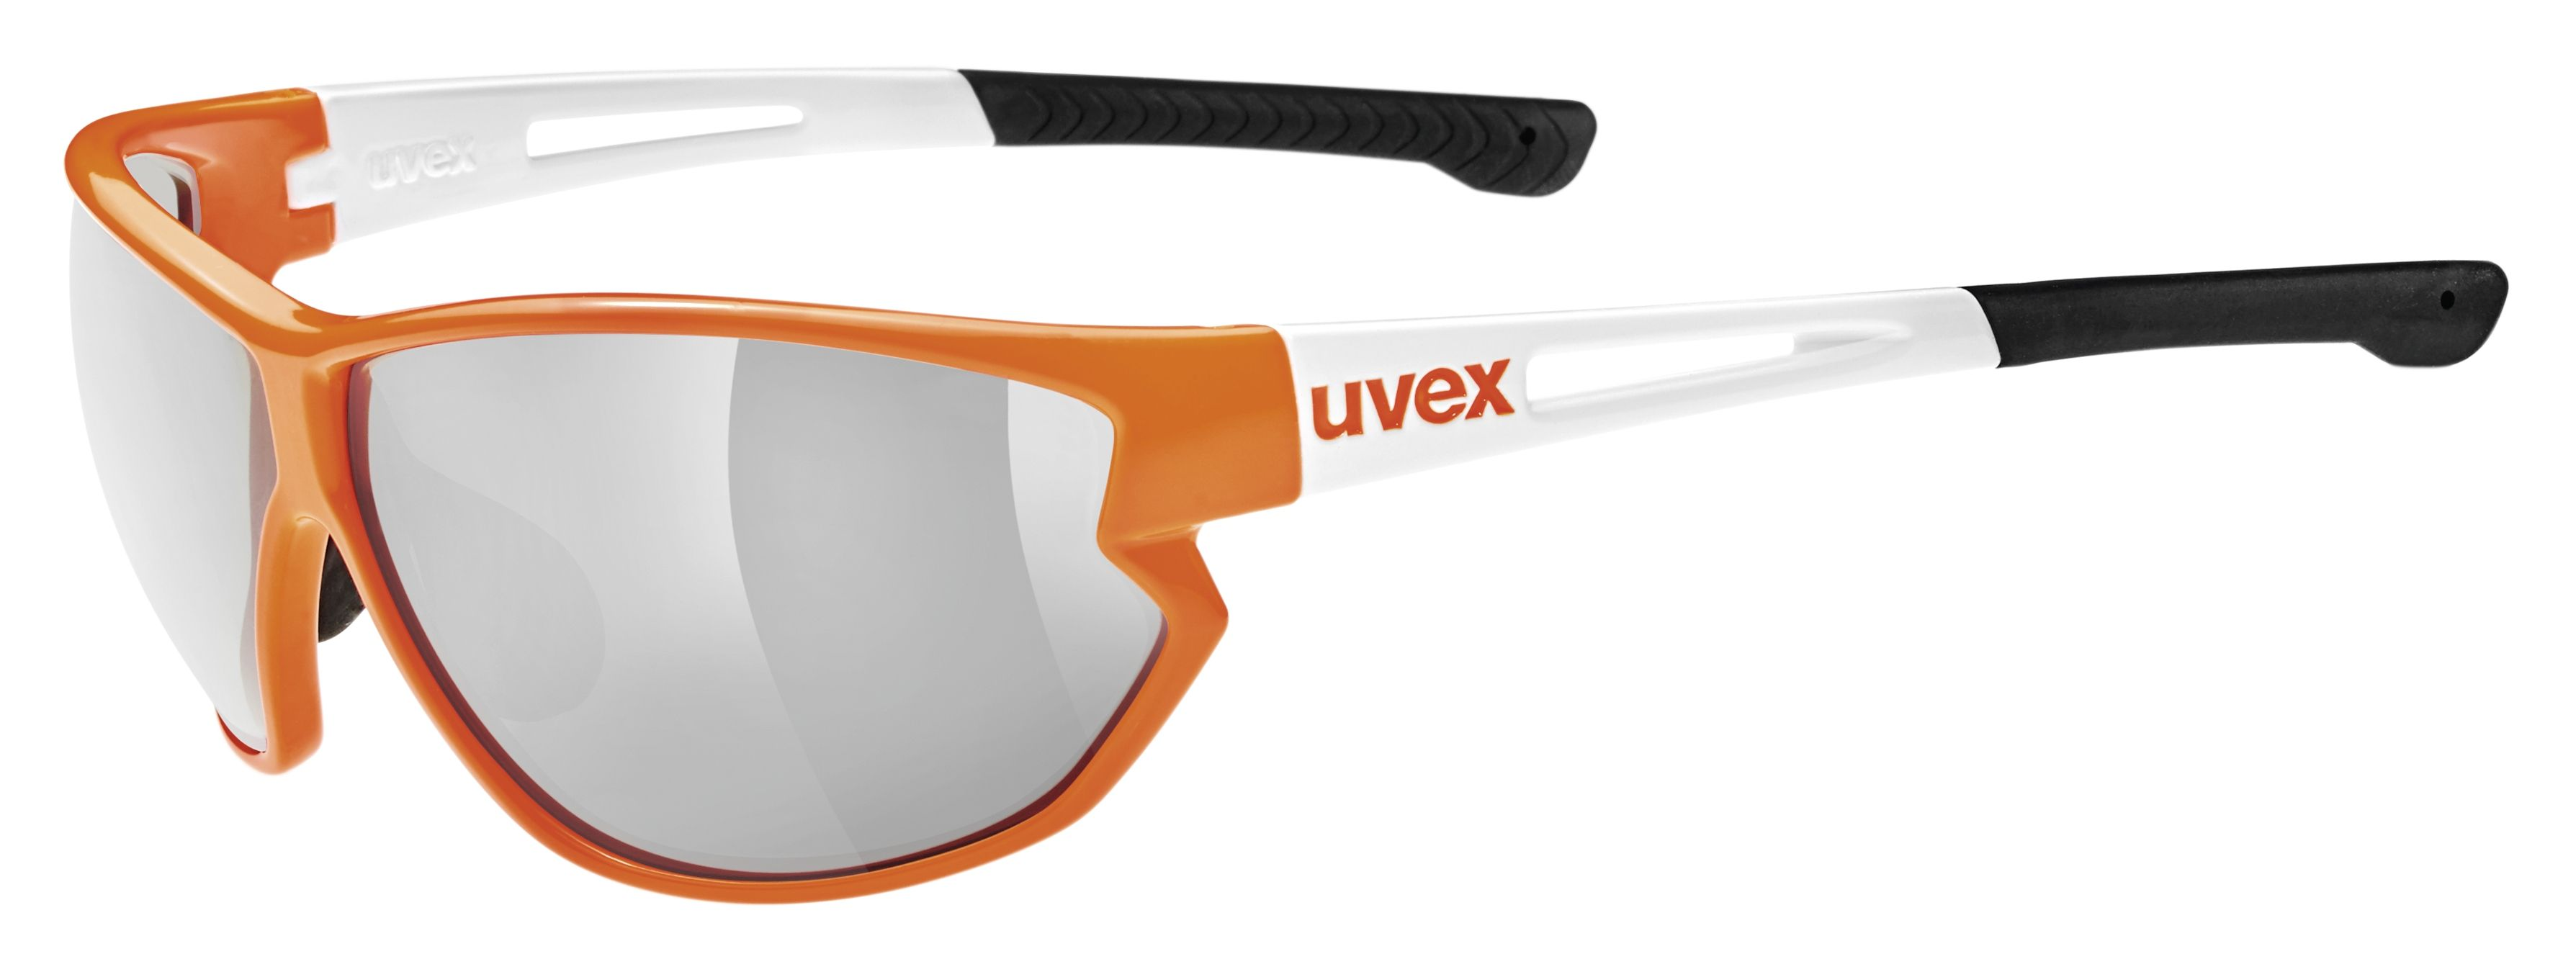 uvex sportstyle 810 vm // Cycling glasses that provide